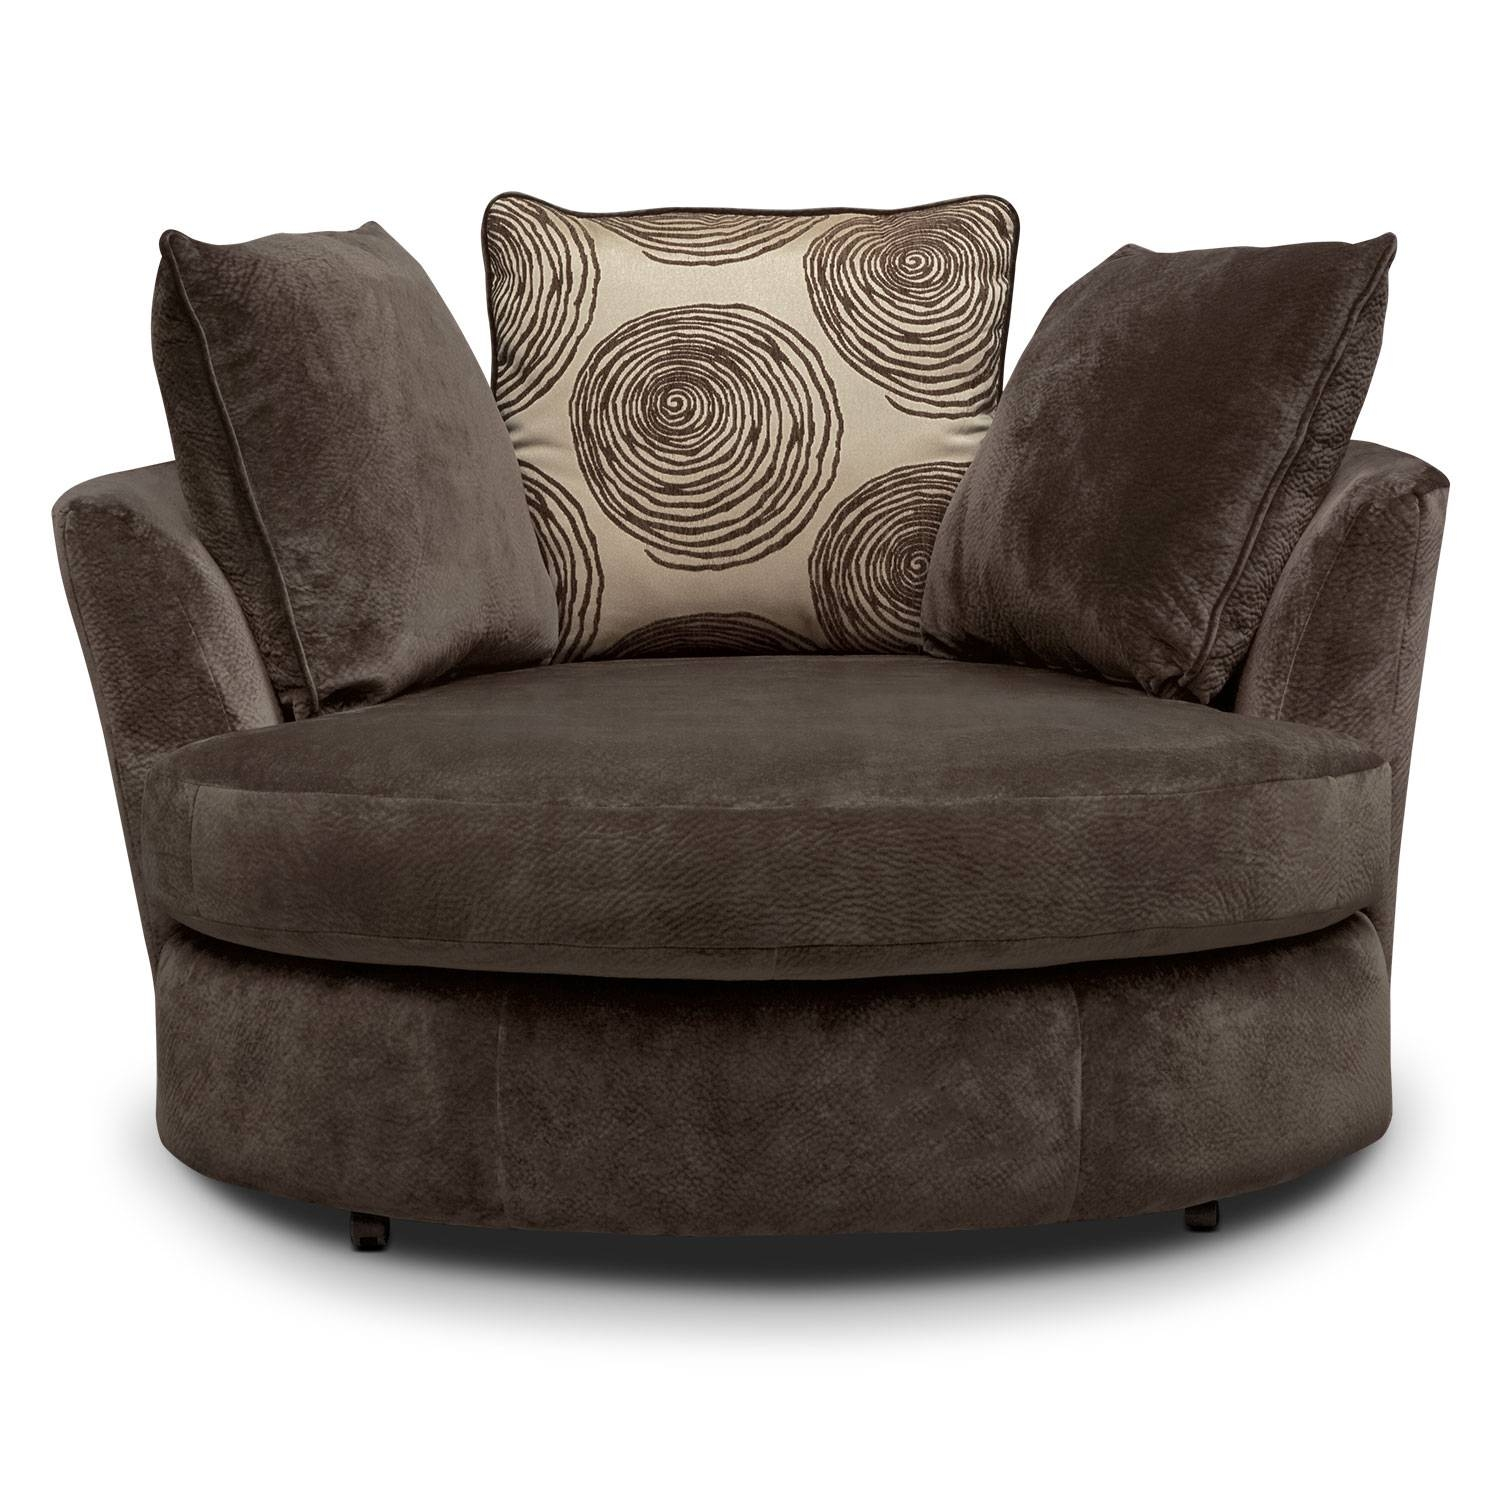 Cordelle Swivel Chair – Chocolate | Value City Furniture With Regard To Swivel Sofa Chairs (View 8 of 30)